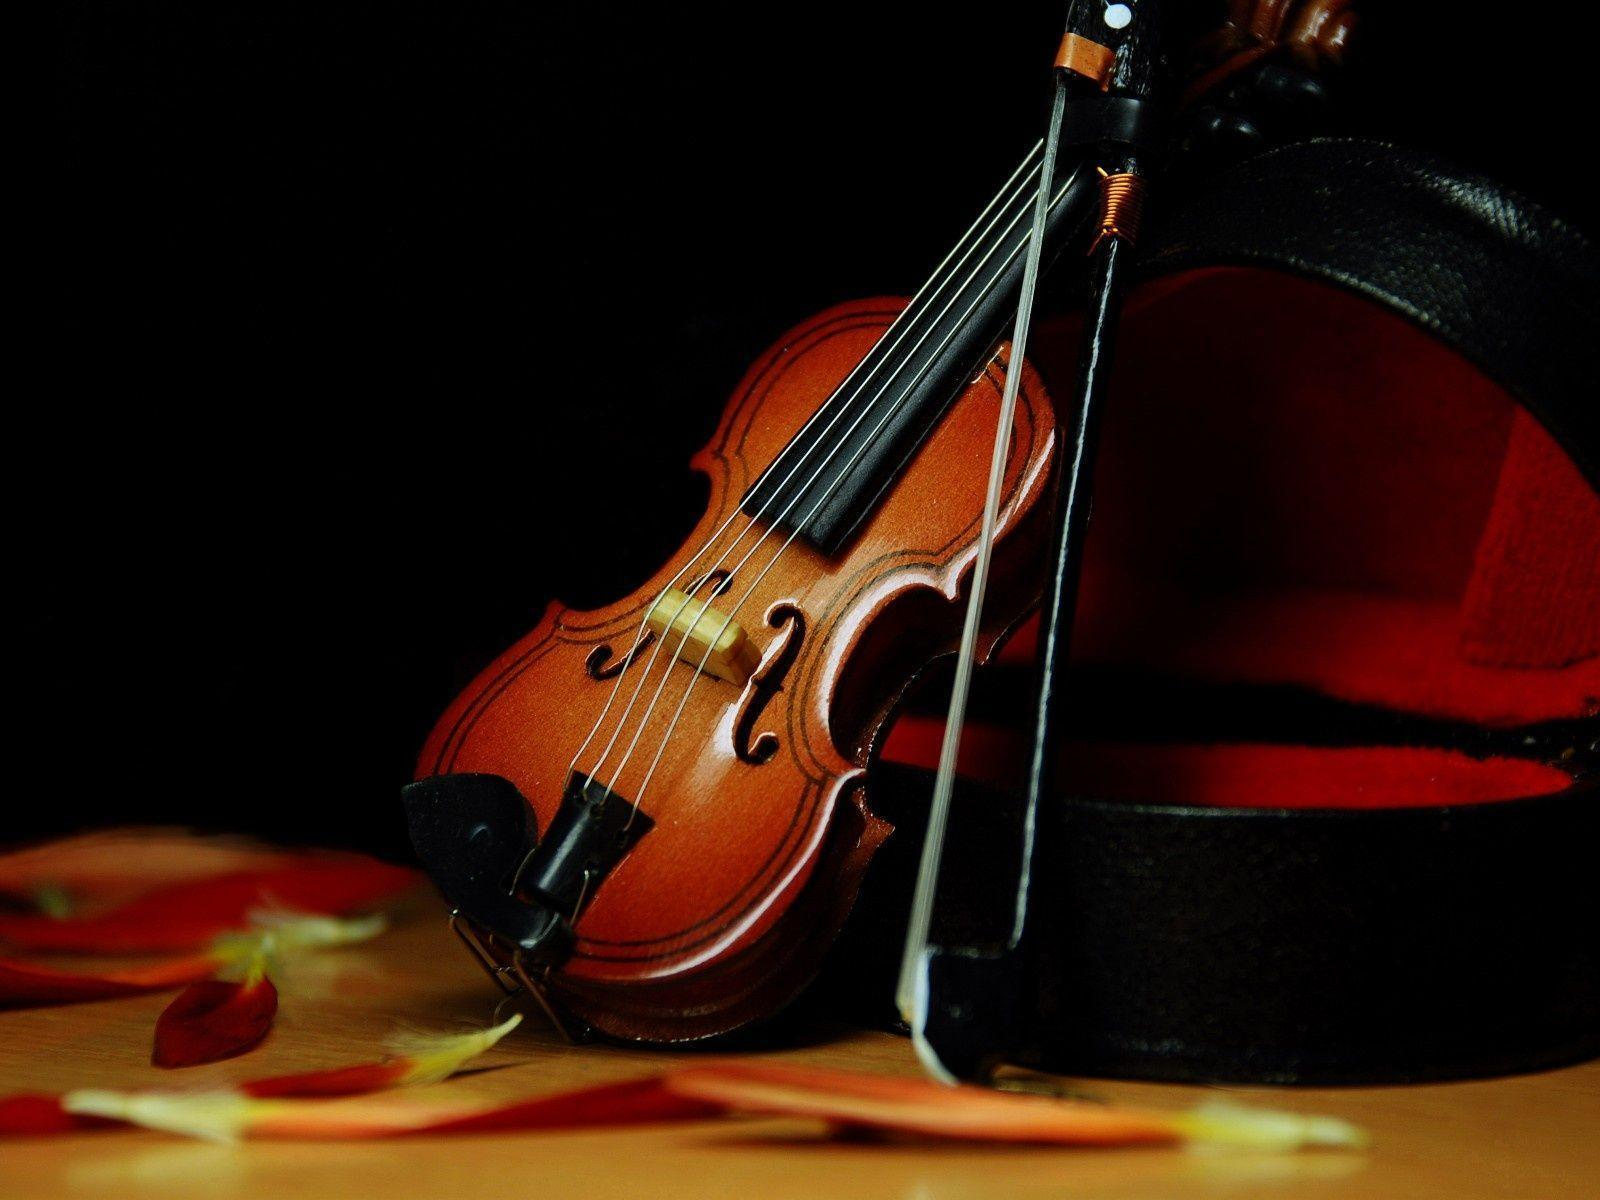 Violin Wallpaper 1440x900 More Wallpapers Music Wallpapers Free ...